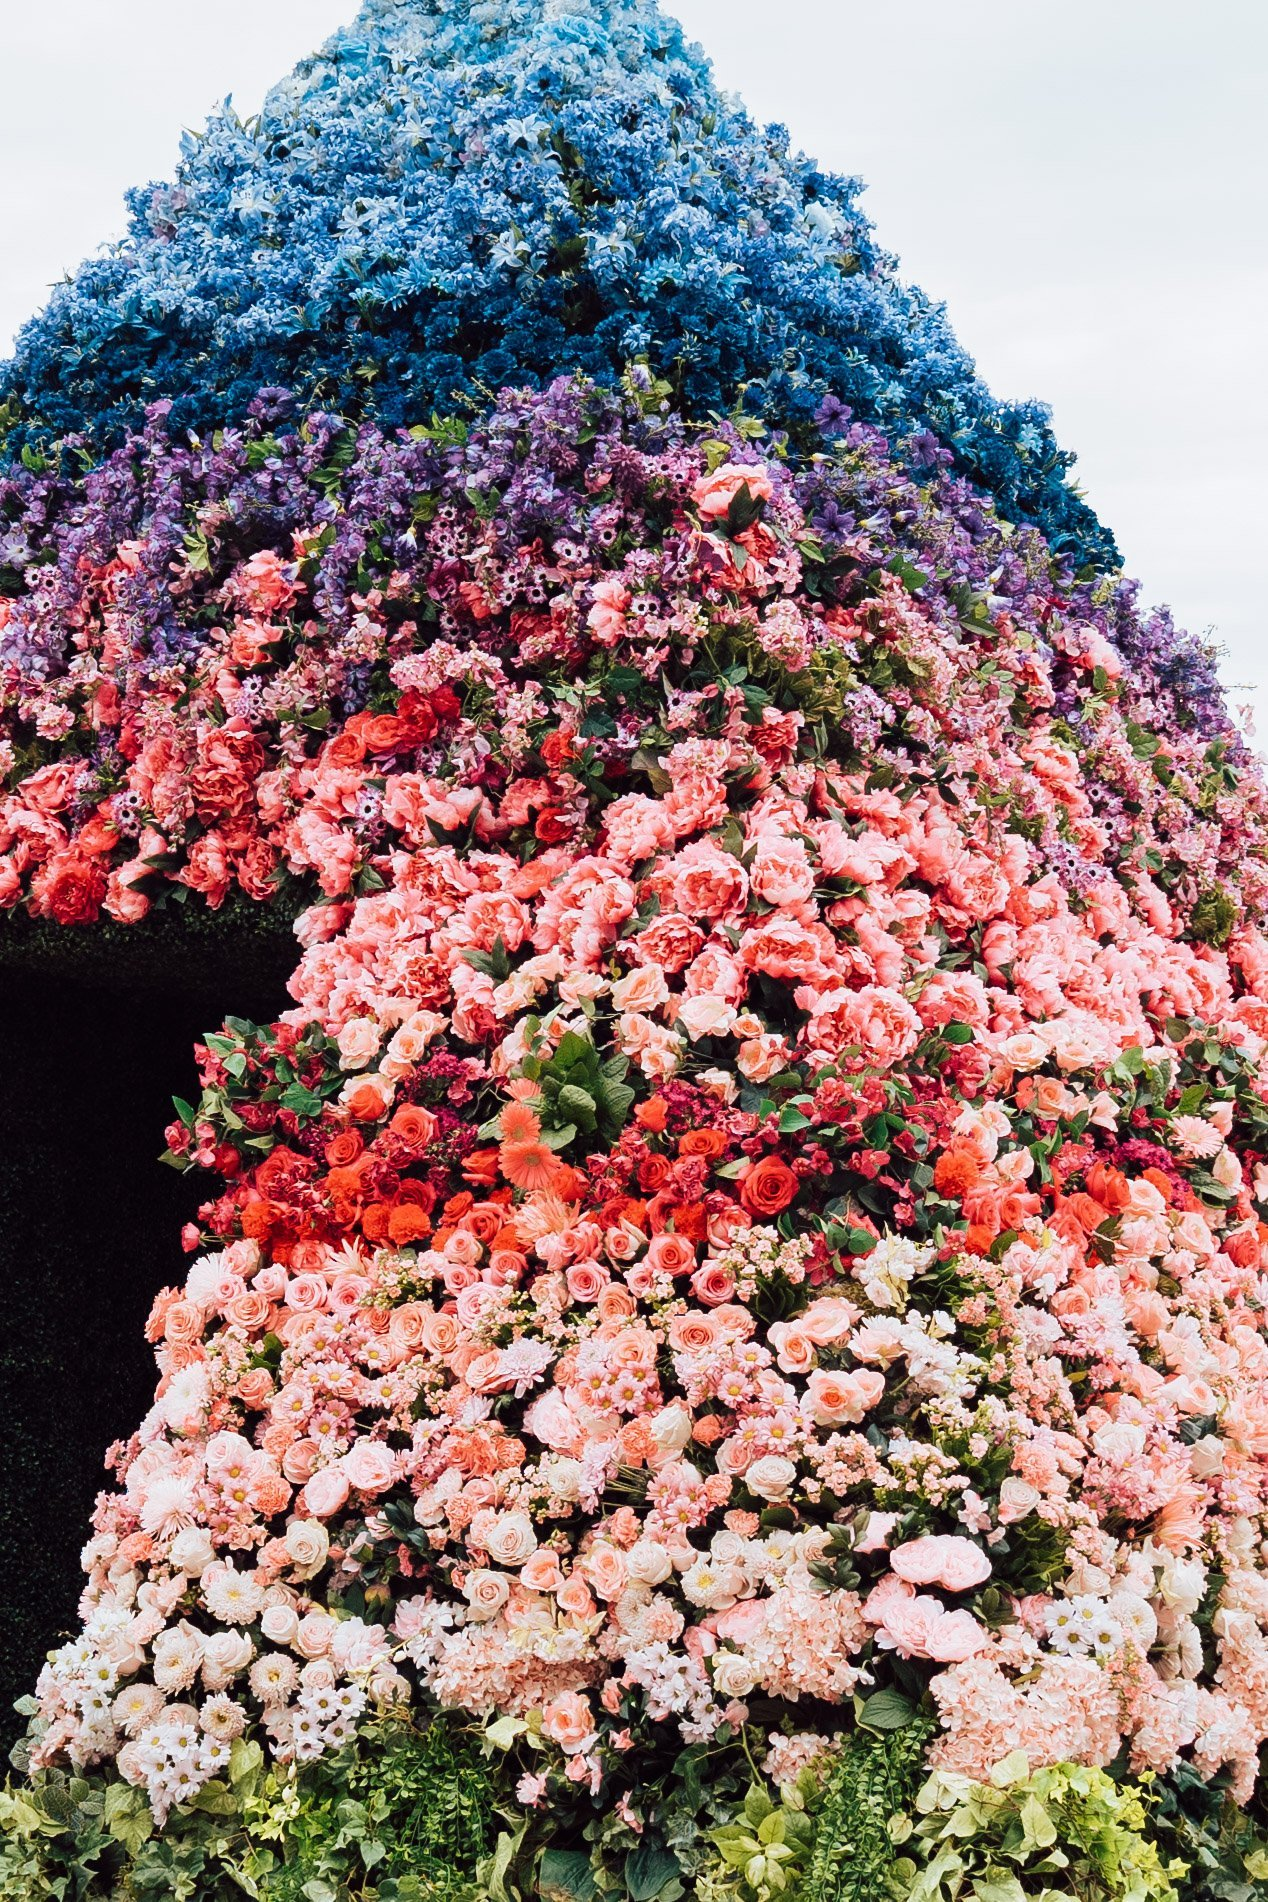 close up of entrance of shaw brighter together flower pyramid, ombre flower design on outside of pyramid